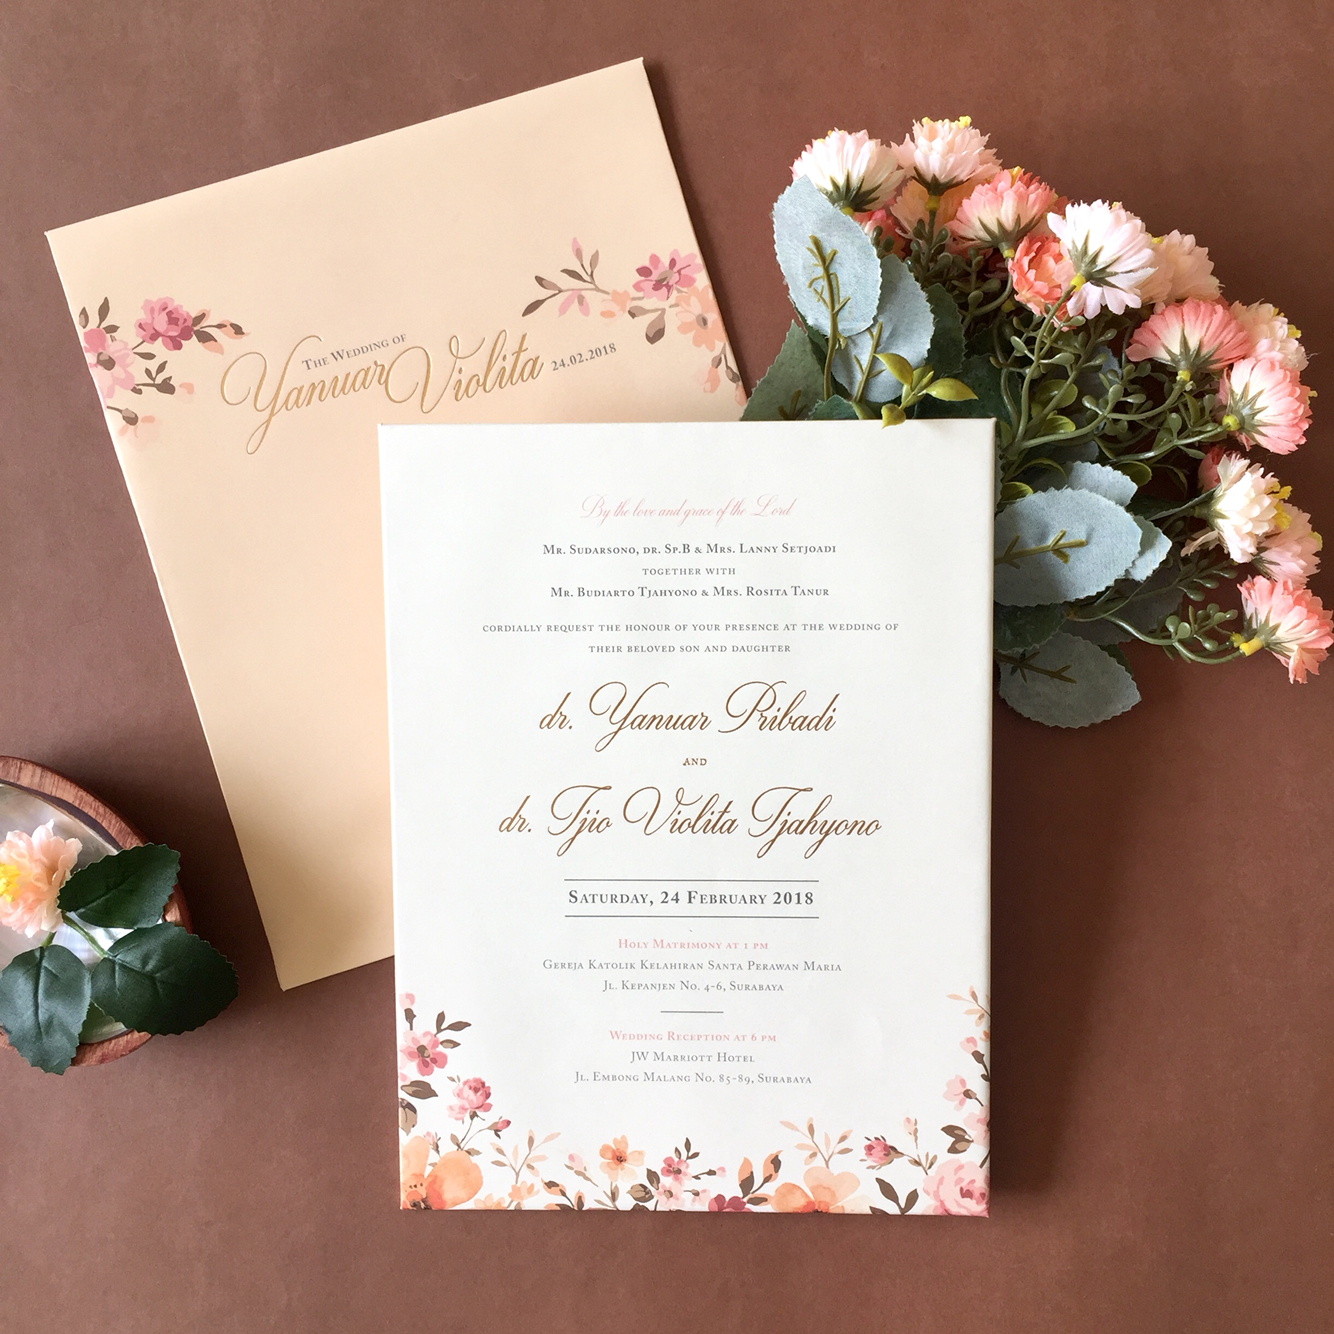 Dot line designs wedding invitations in surabaya bridestory stopboris Gallery